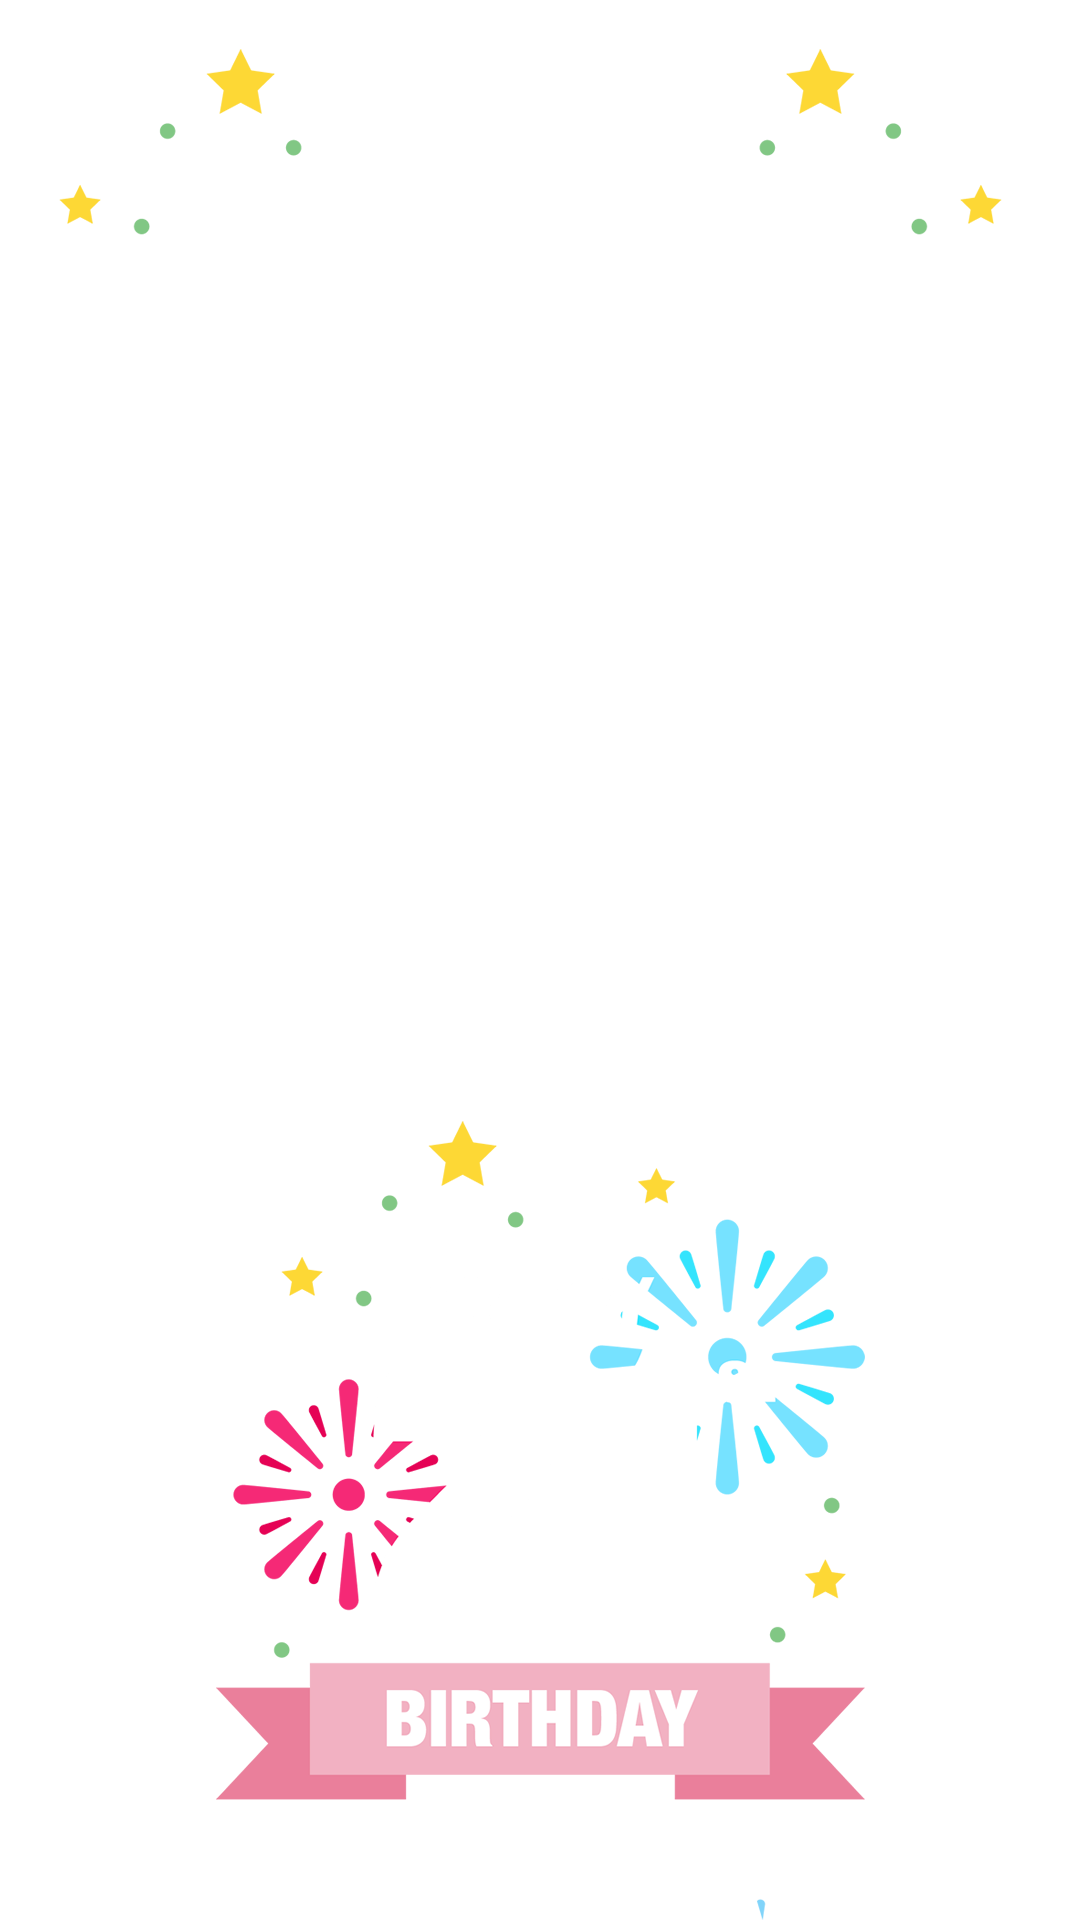 Birthday snapchat filter clipart png freeuse download How to make a birthday filter on snapchat clipart images gallery for ... png freeuse download